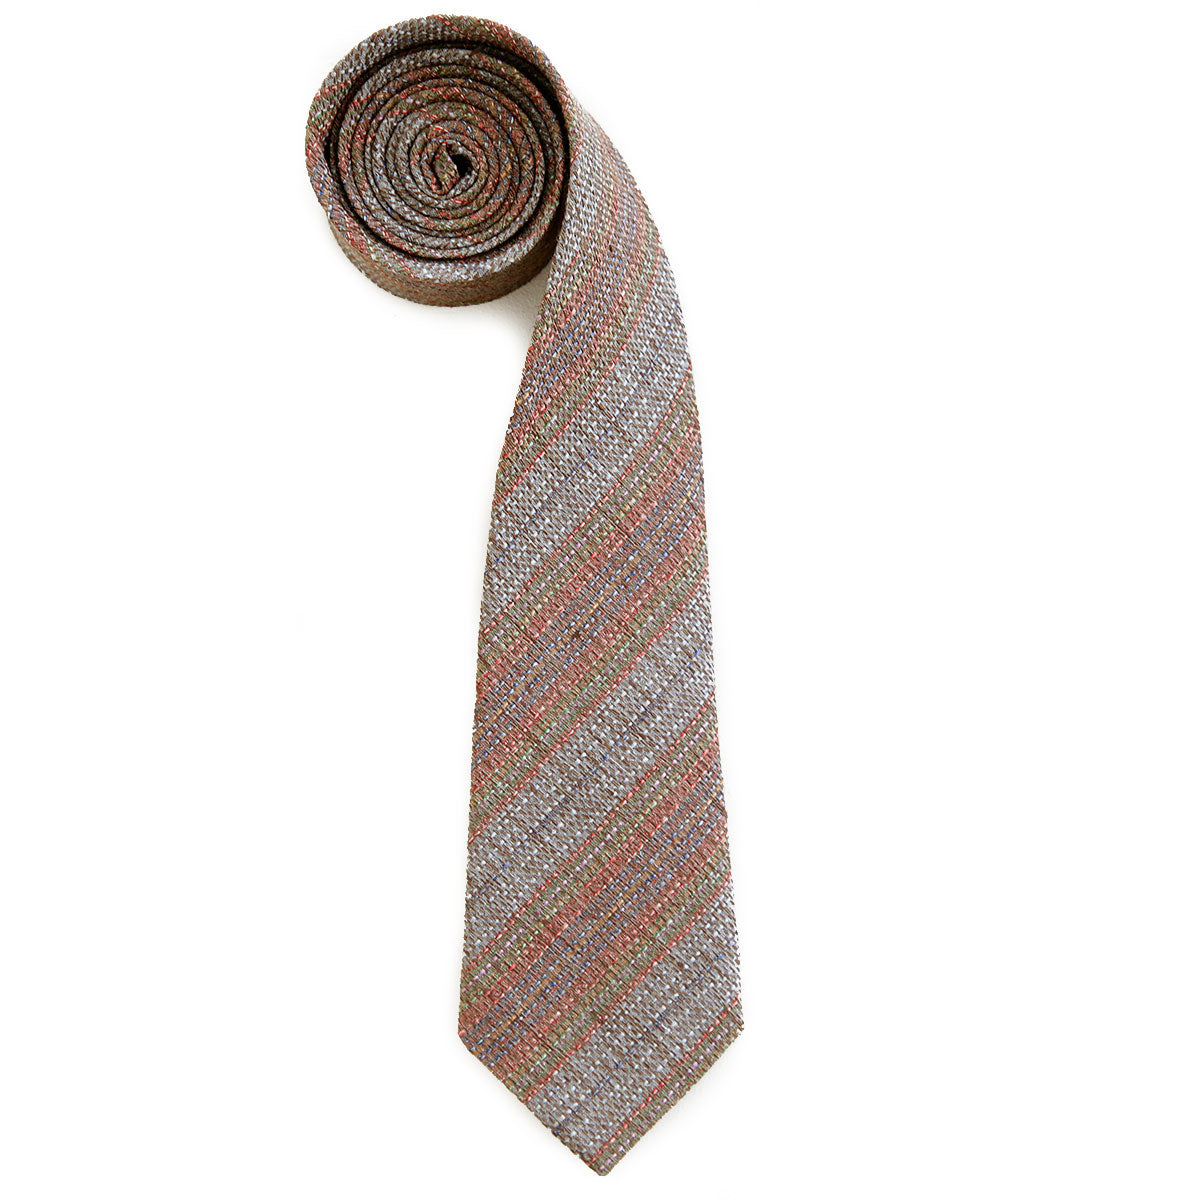 The Lighthouse Necktie